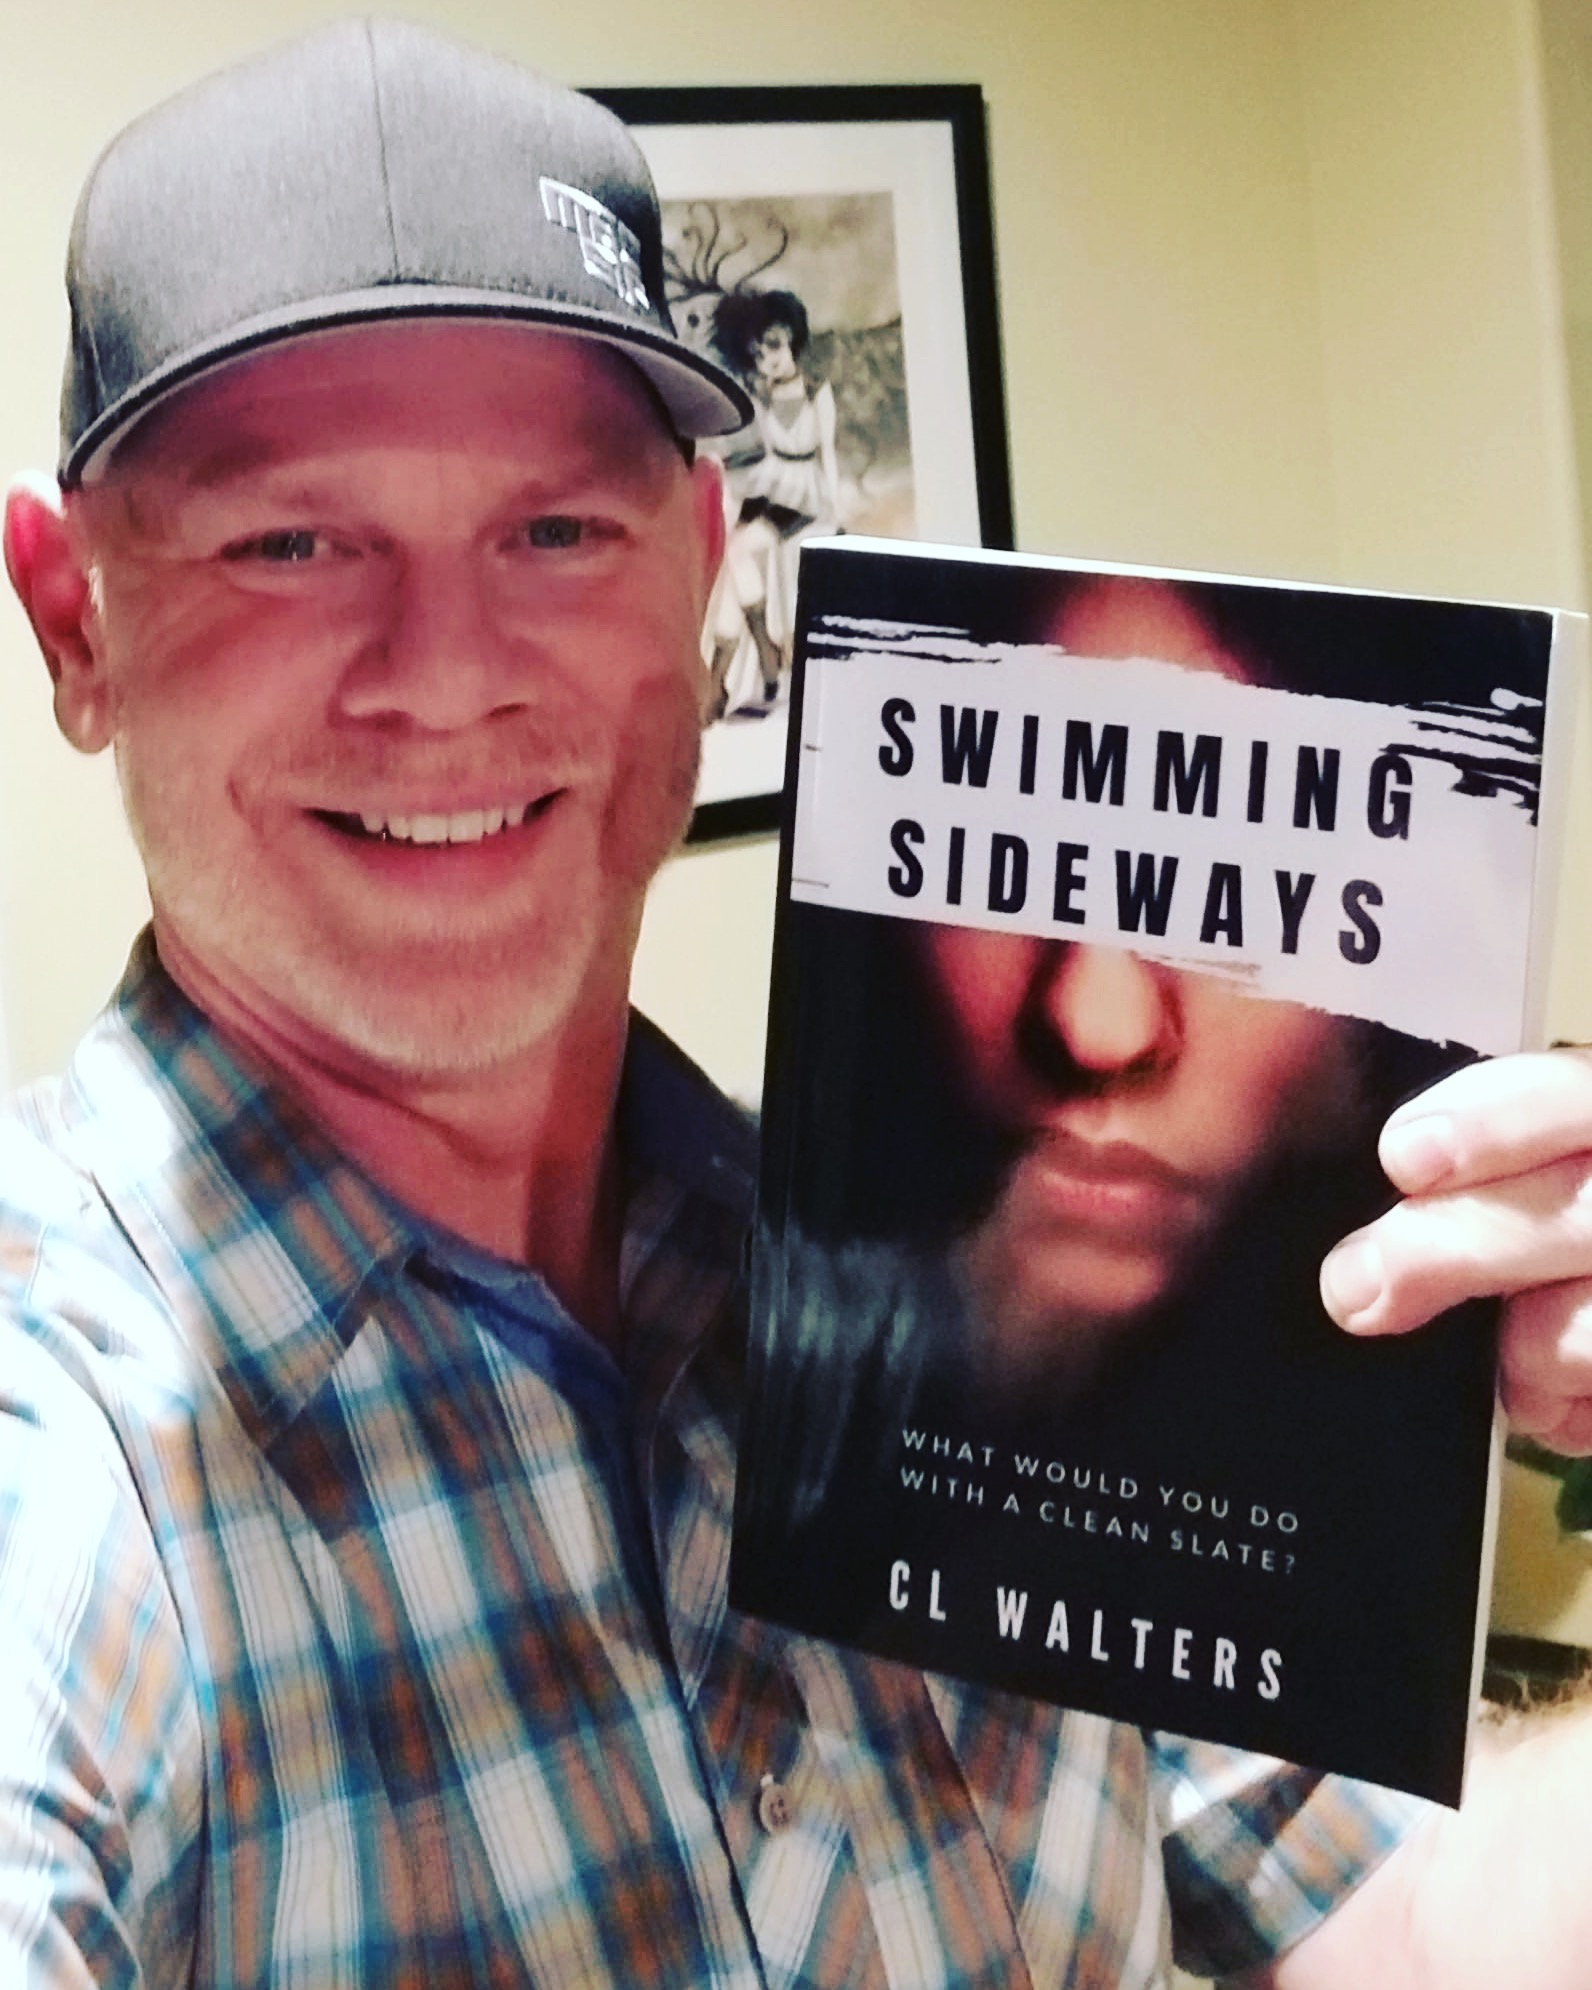 Mike Walters - also a novelist - and Swimming Sideways.